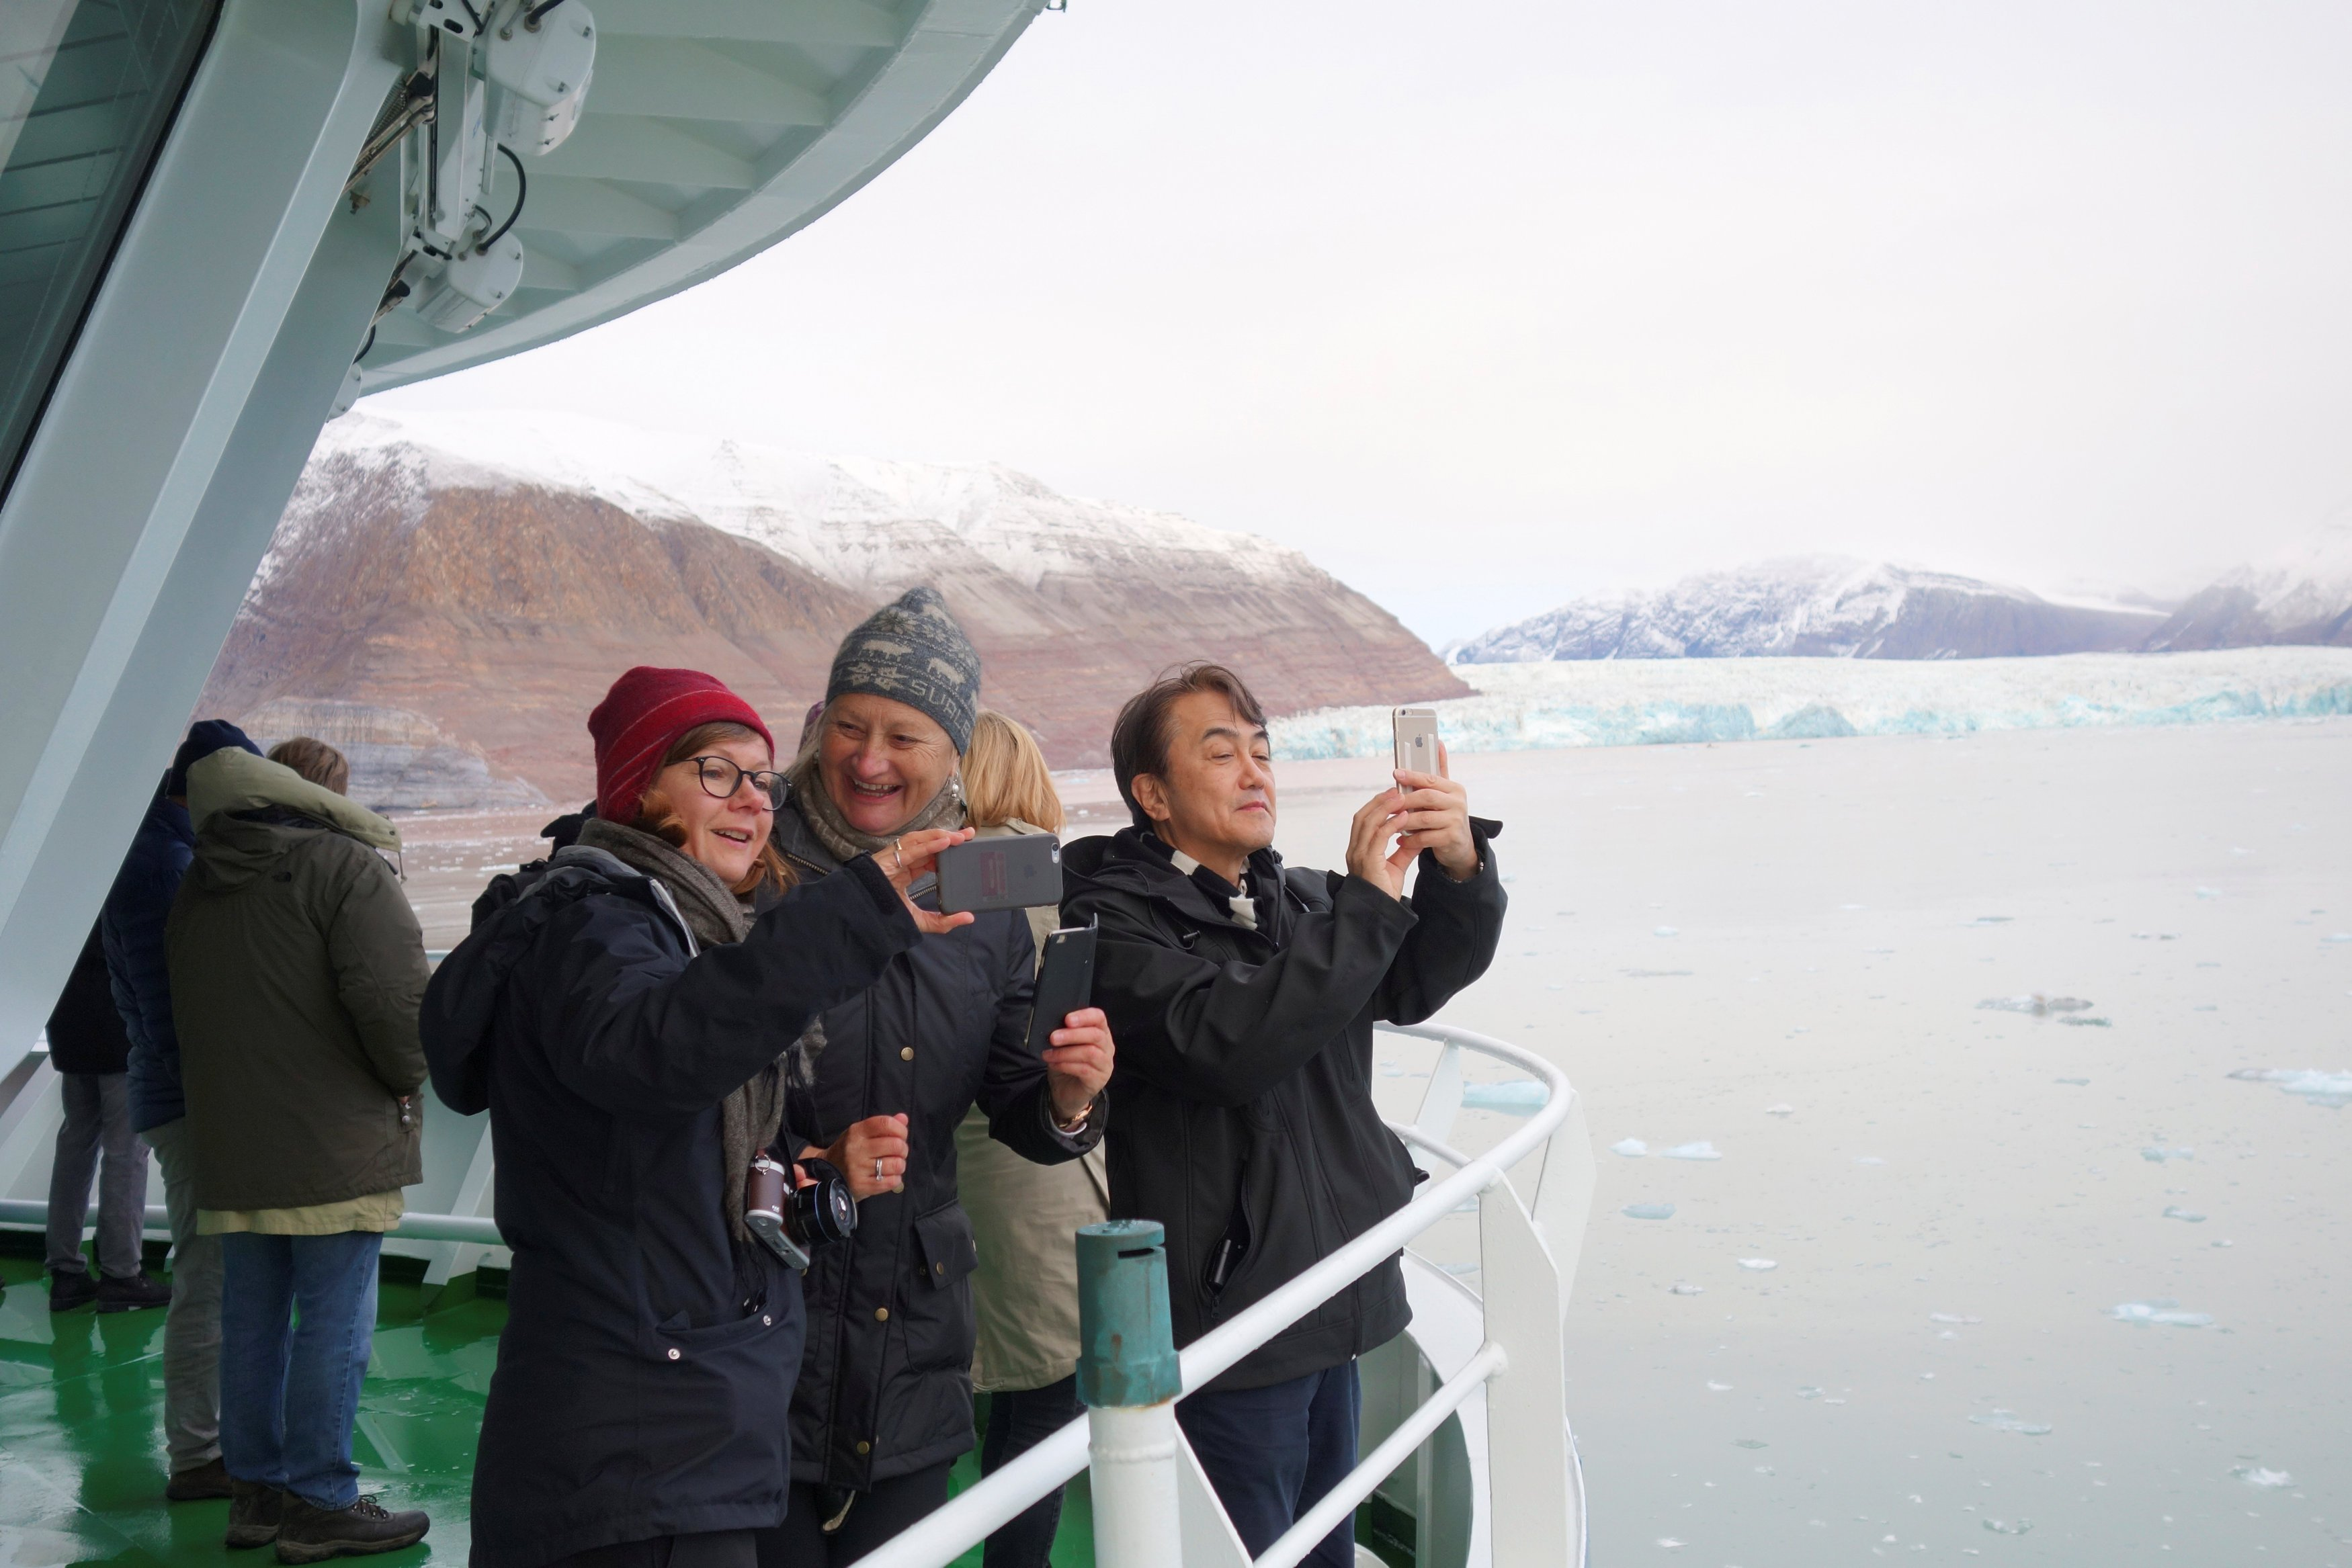 Statistics Norway: Tourism bypasses mining in Svalbard